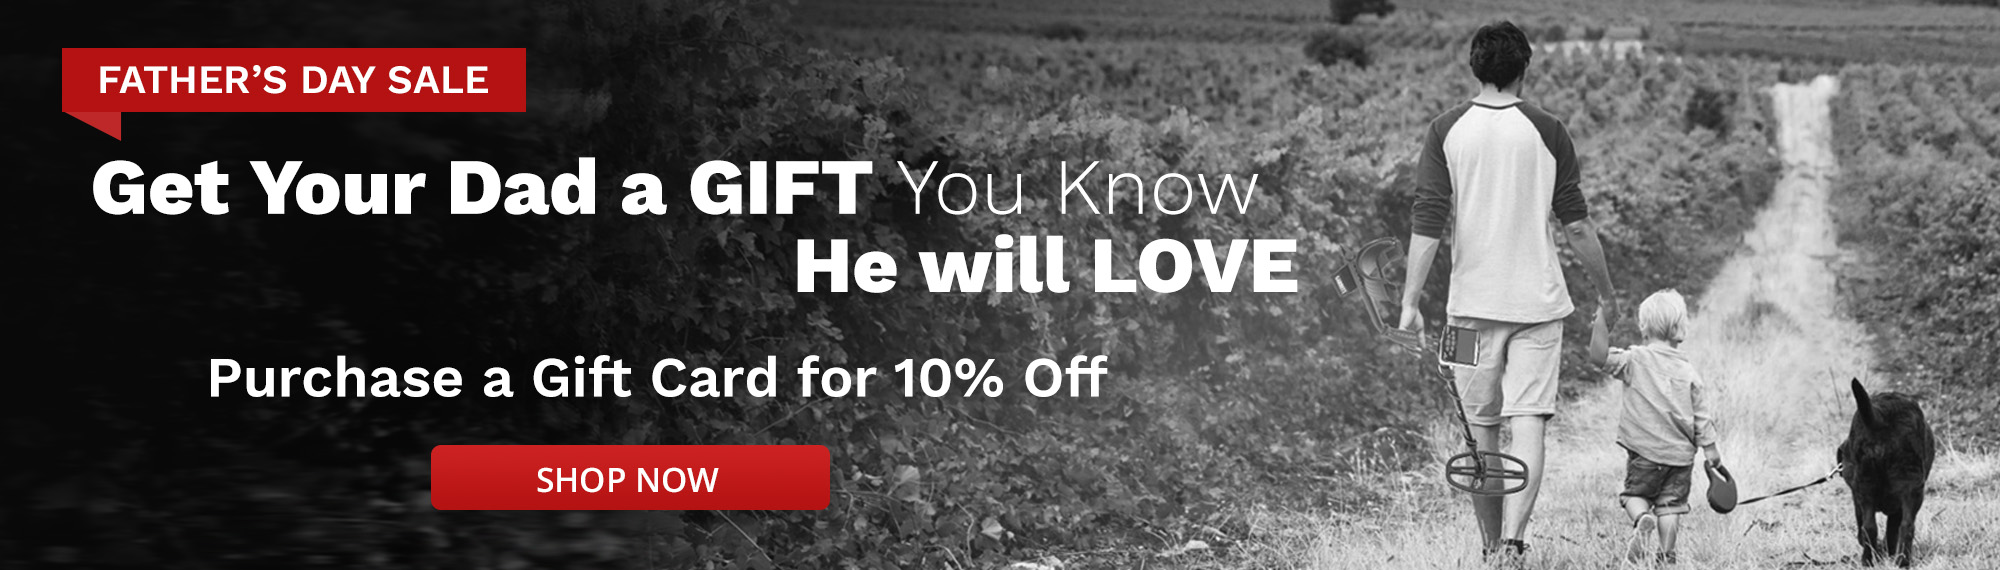 Father's Day Sale in White Text over Red Banner with Get Your Dad a Gift You Know He Will Love Purchase a Gift Card for 10 Percent off Shop Now on Red Button Over Black and White Image of Man and Child Holding Dog's Leash Walking Down Field Alley